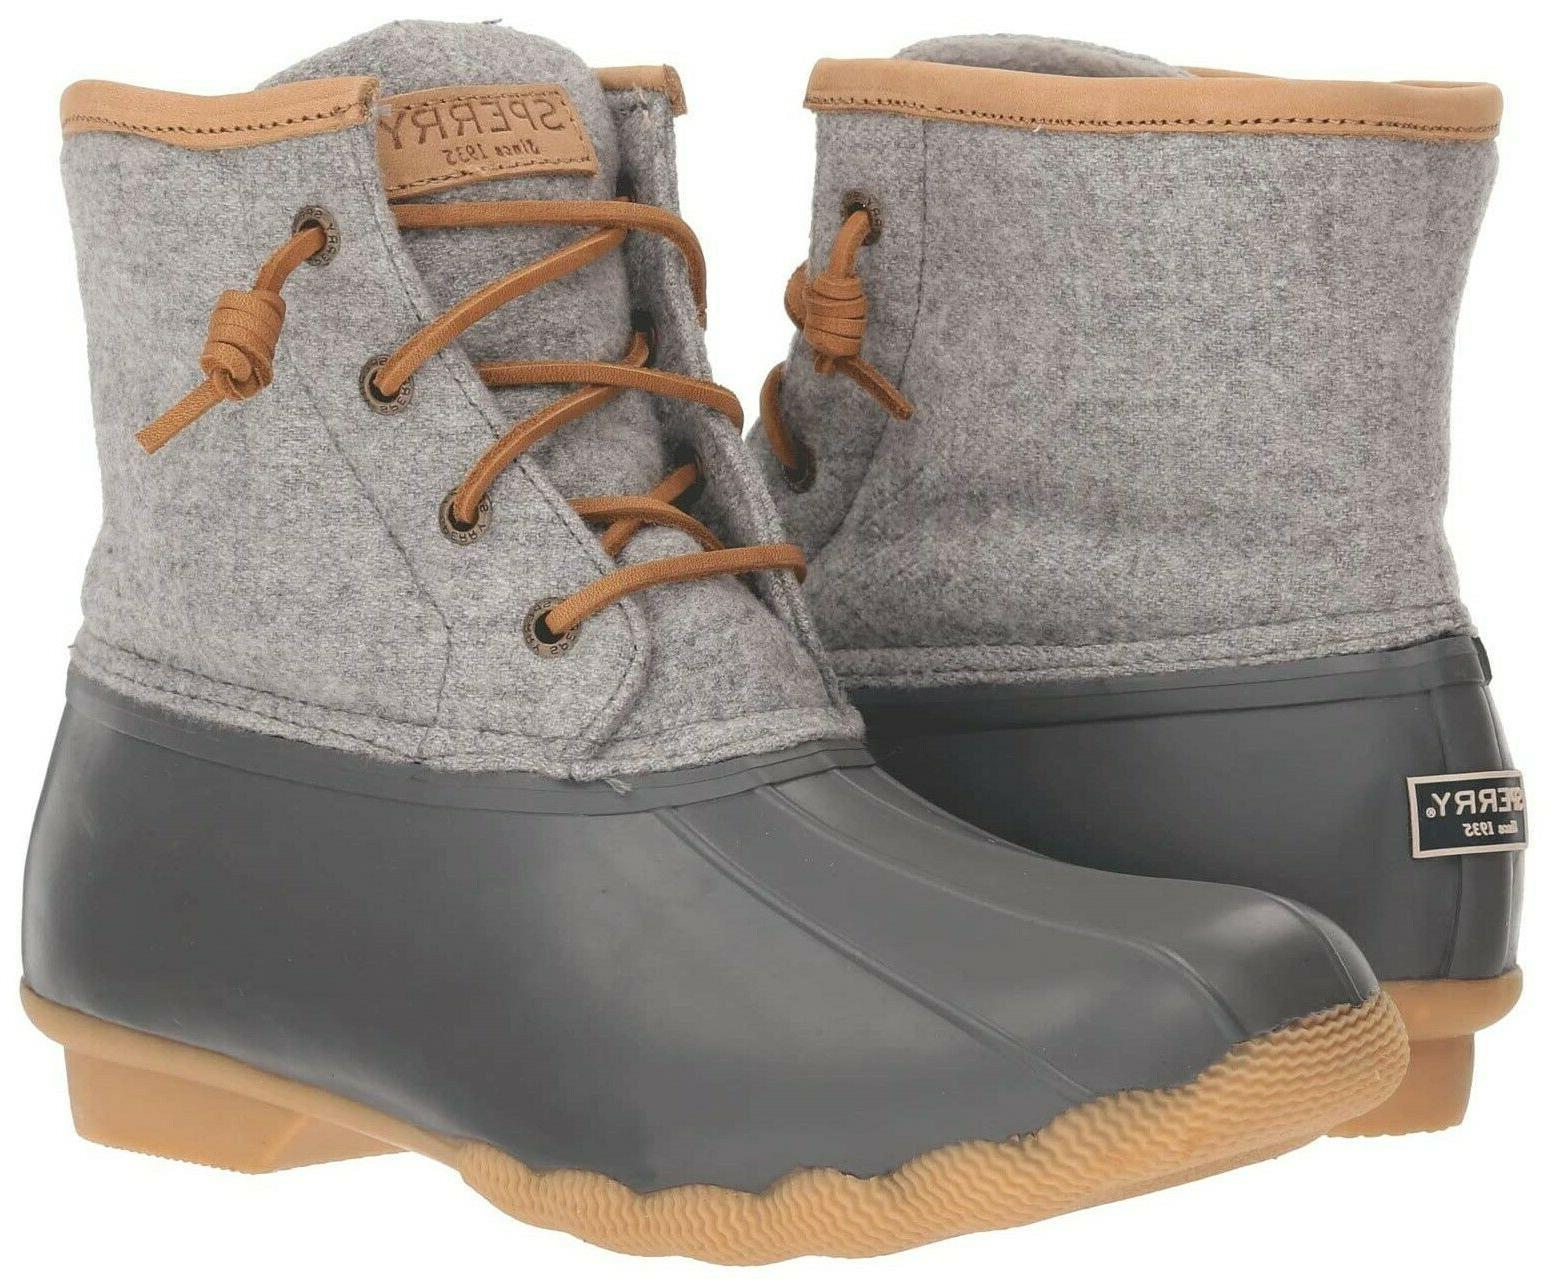 Sperry Top-Sider Saltwater Wool Duck Boots Winter Snow Rain